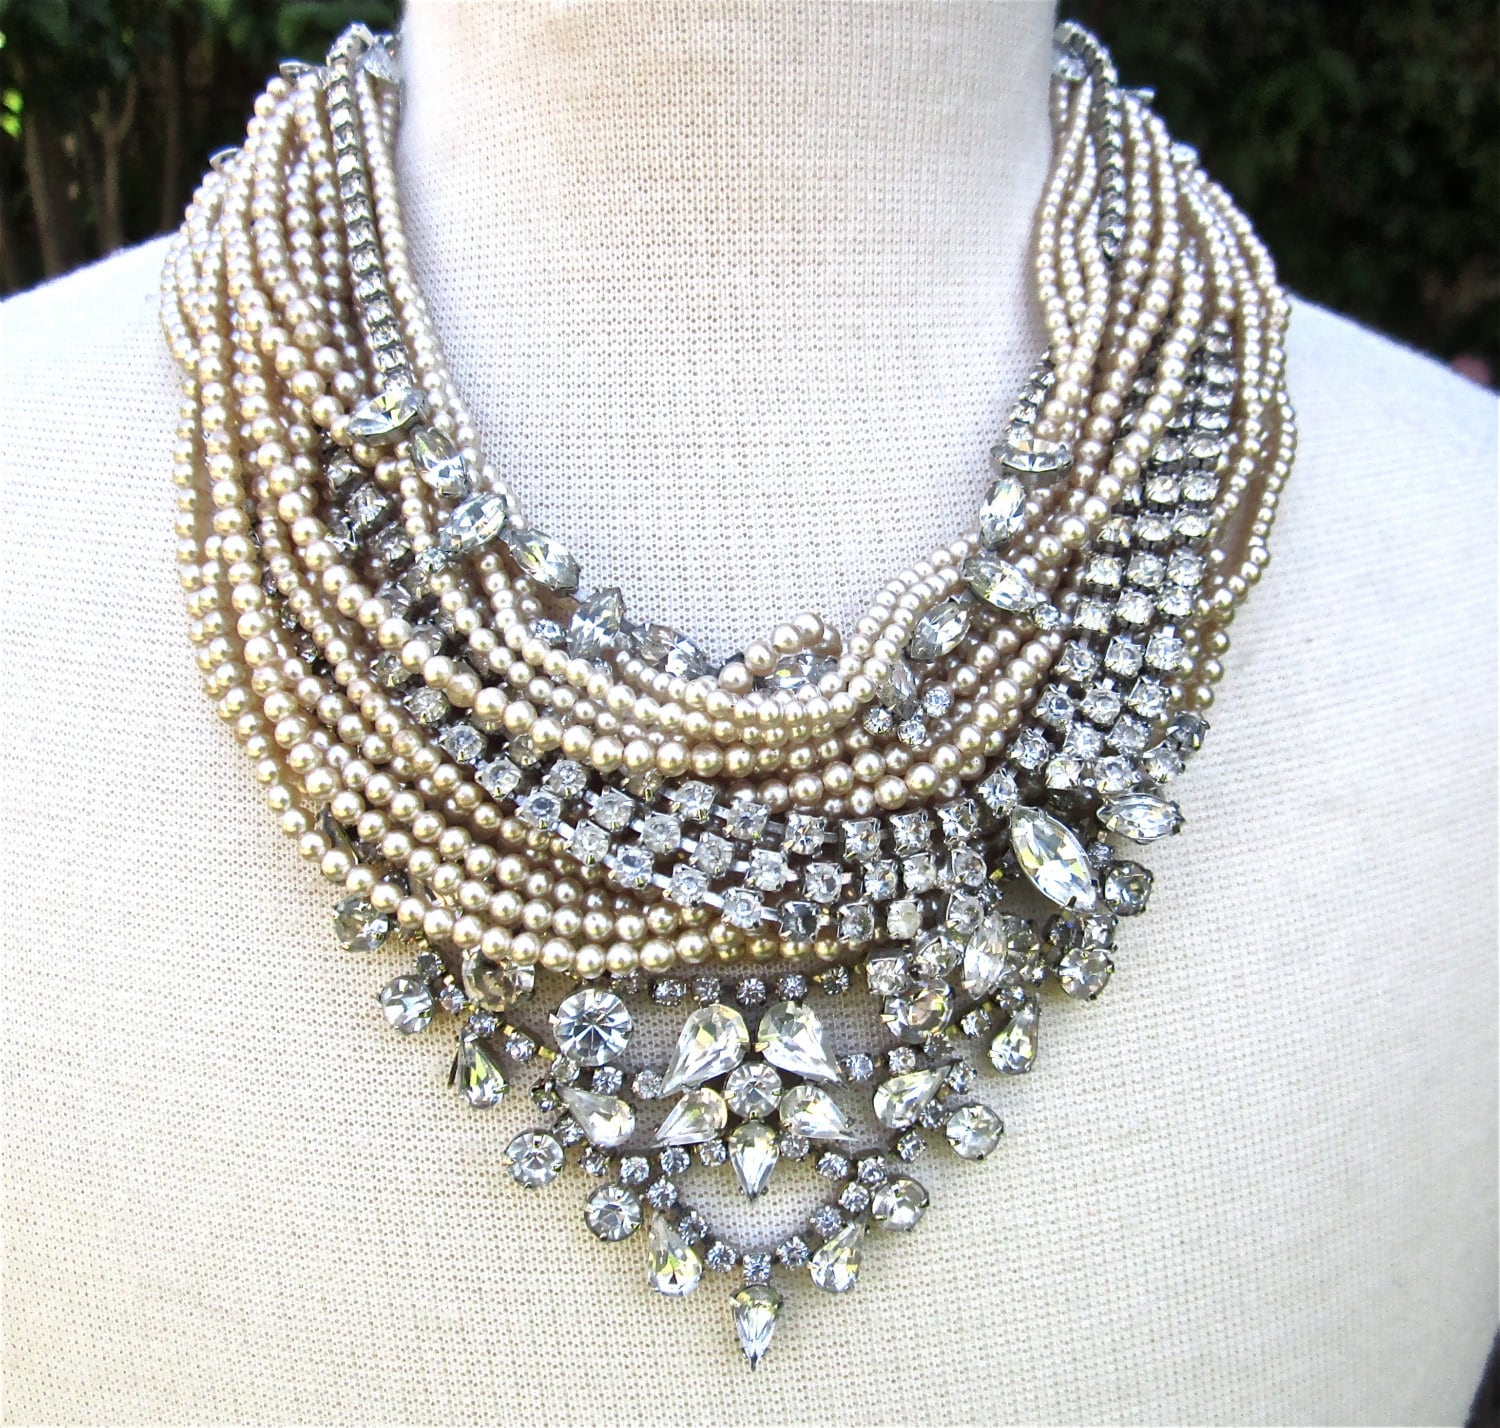 These amazing statement necklaces are #trending! Stay up to date on the hottest jewelry trends with Lulus! Rhinestones, Boho and so much more!